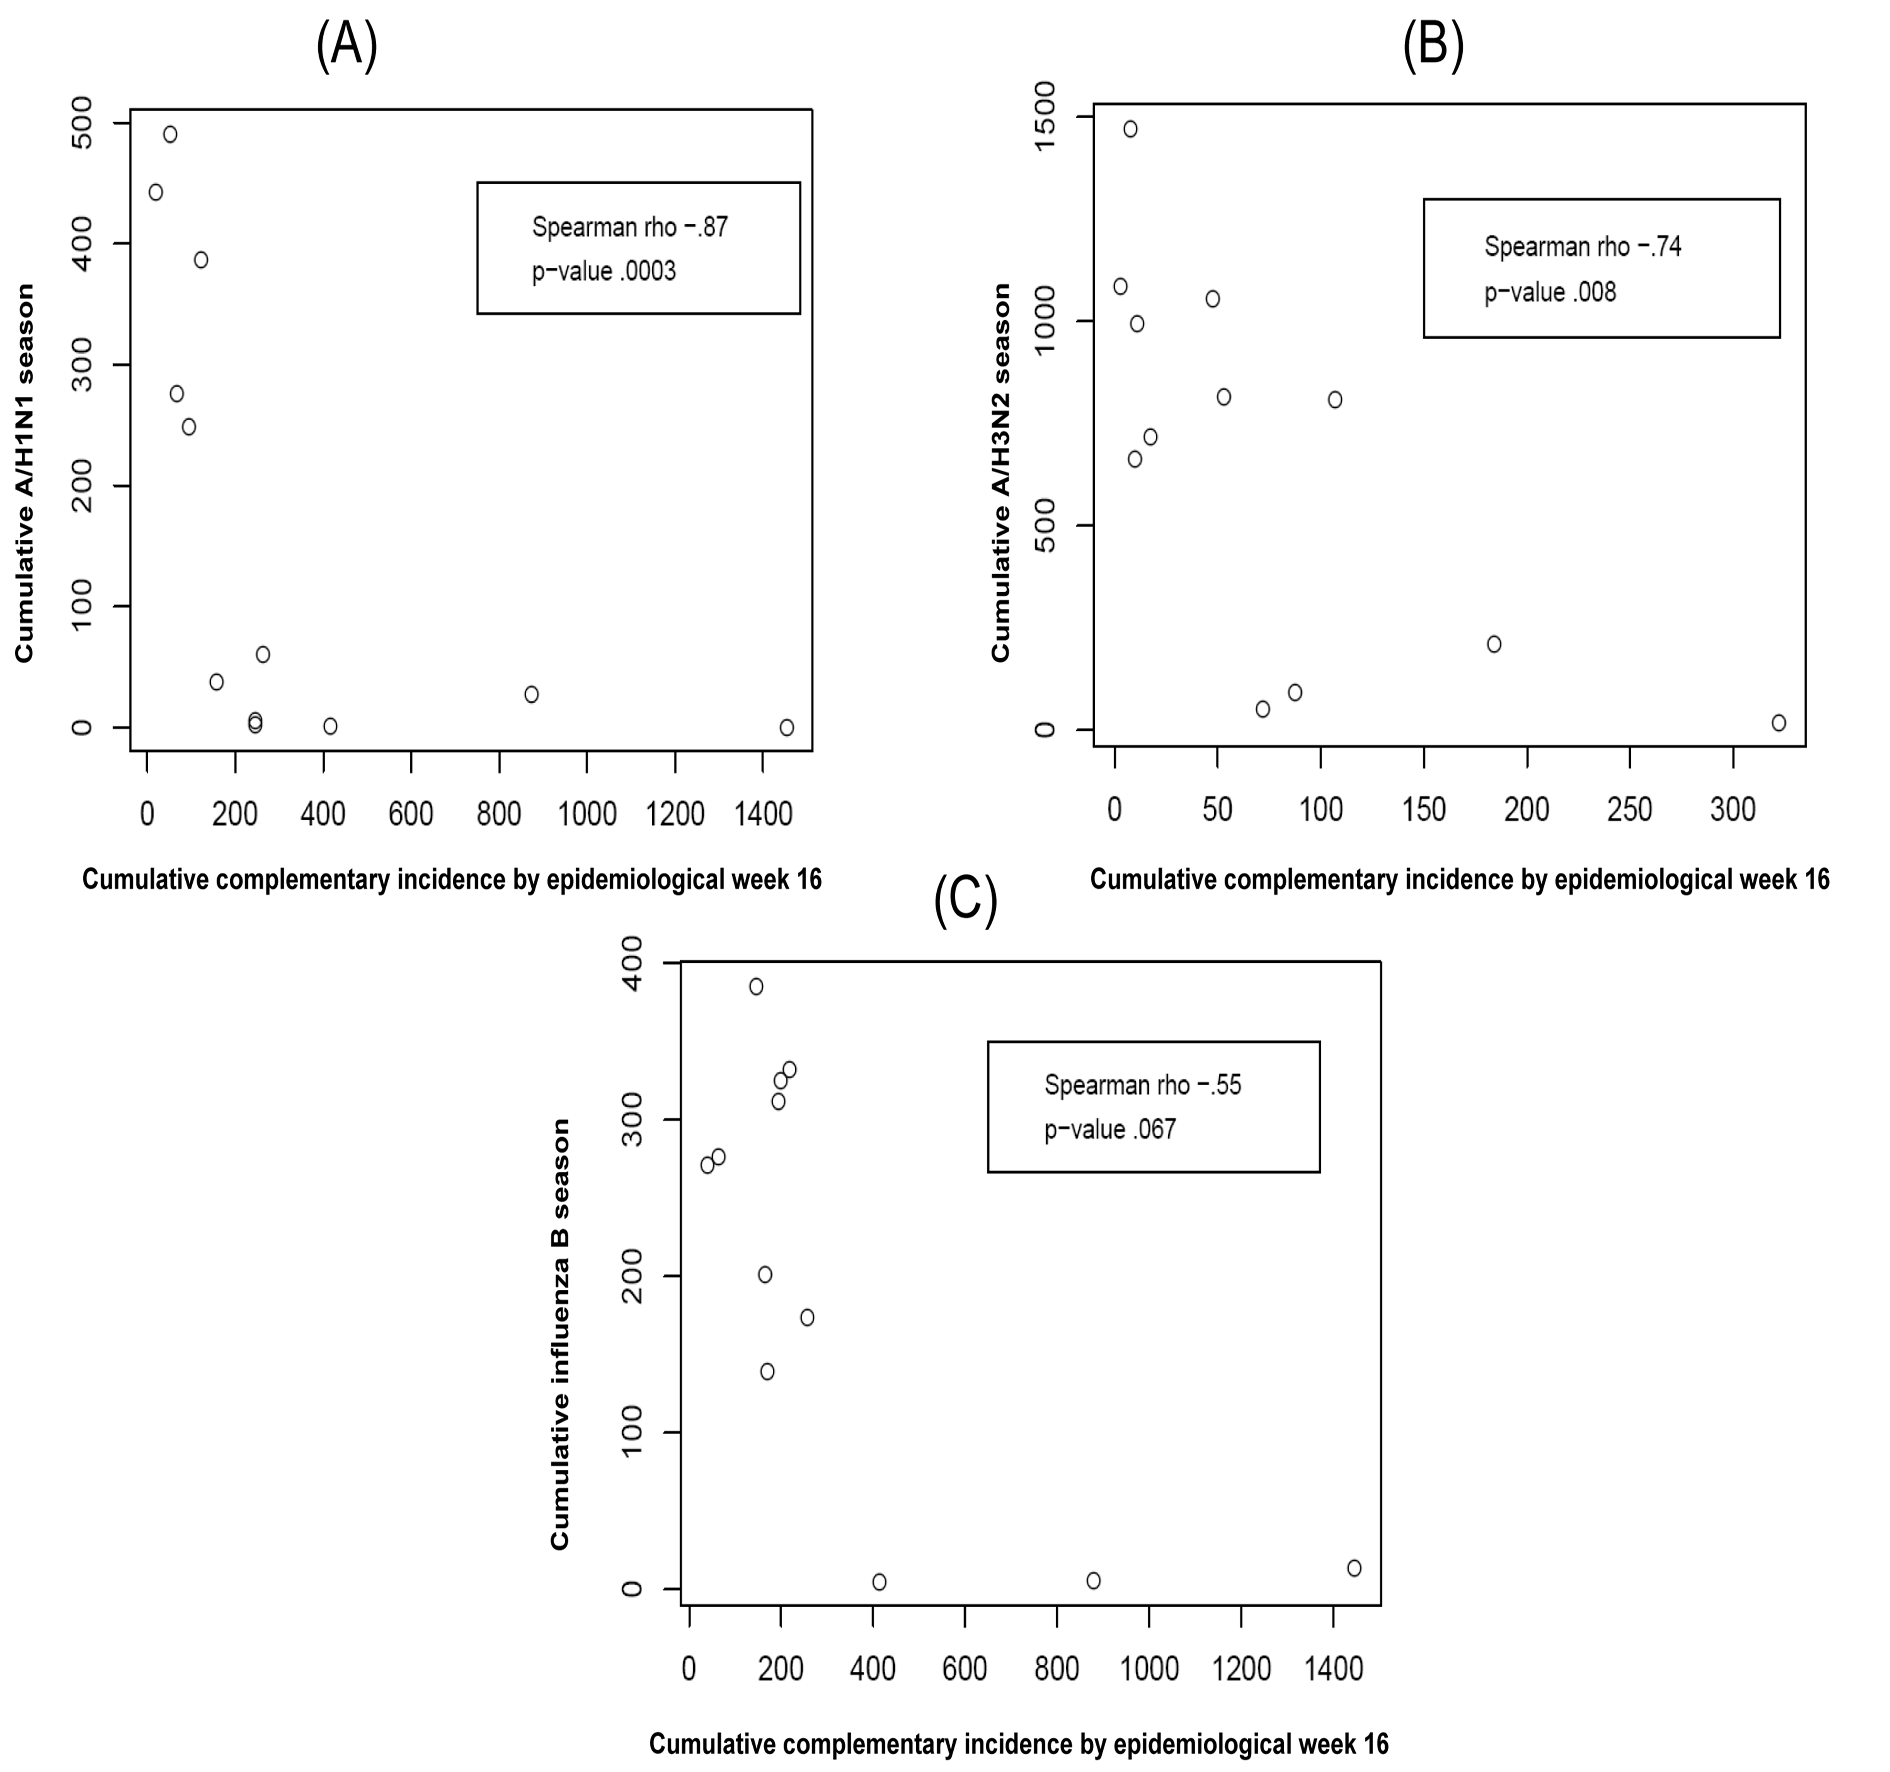 The relationship between the cumulative complementary incidence for each of the index strains A/H1N1 (A), A/H3N2 (B), and B (C) by epidemiological week 16 (calendar week 3) and the index strain's cumulative incidence over the entire season (i.e., its epidemic size) for the 12 y in the data.